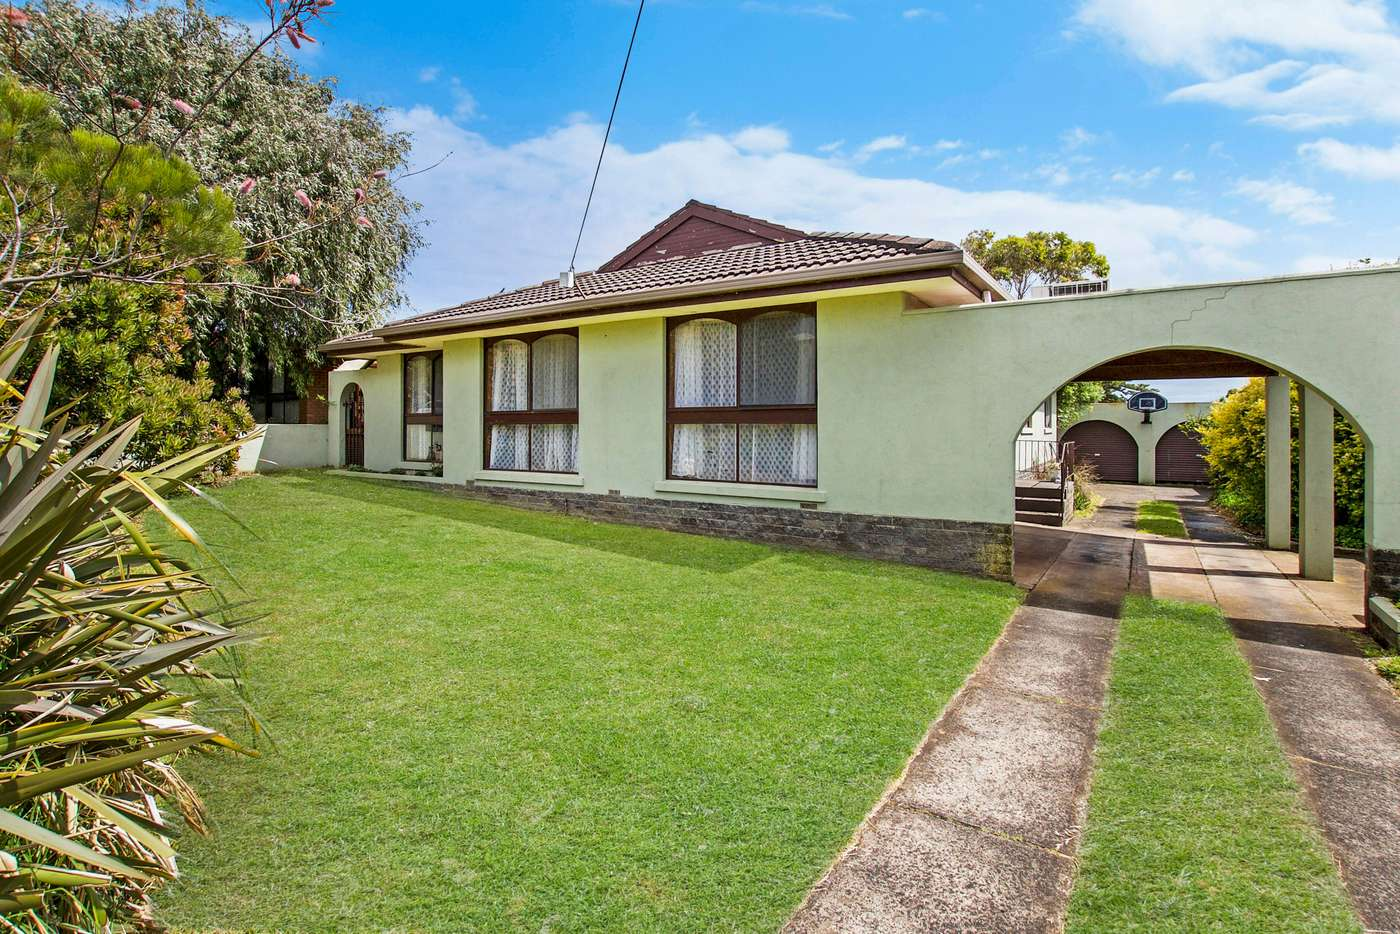 Main view of Homely house listing, 12 Thompson Street, Warrnambool VIC 3280